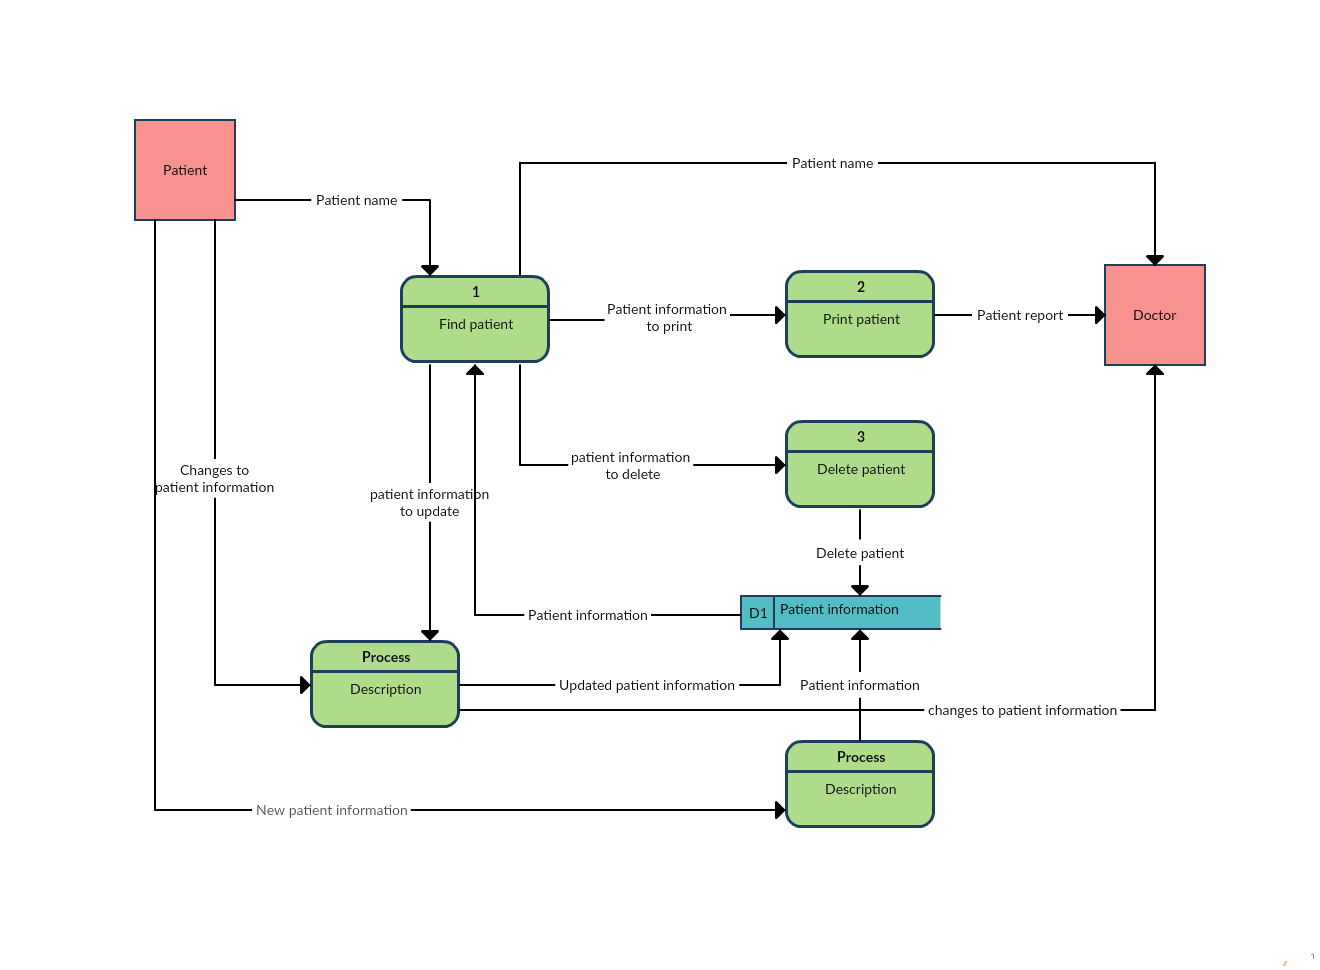 Data flow diagram templates to map data flows creately blog data flow diagram template of a patient information system nvjuhfo Choice Image